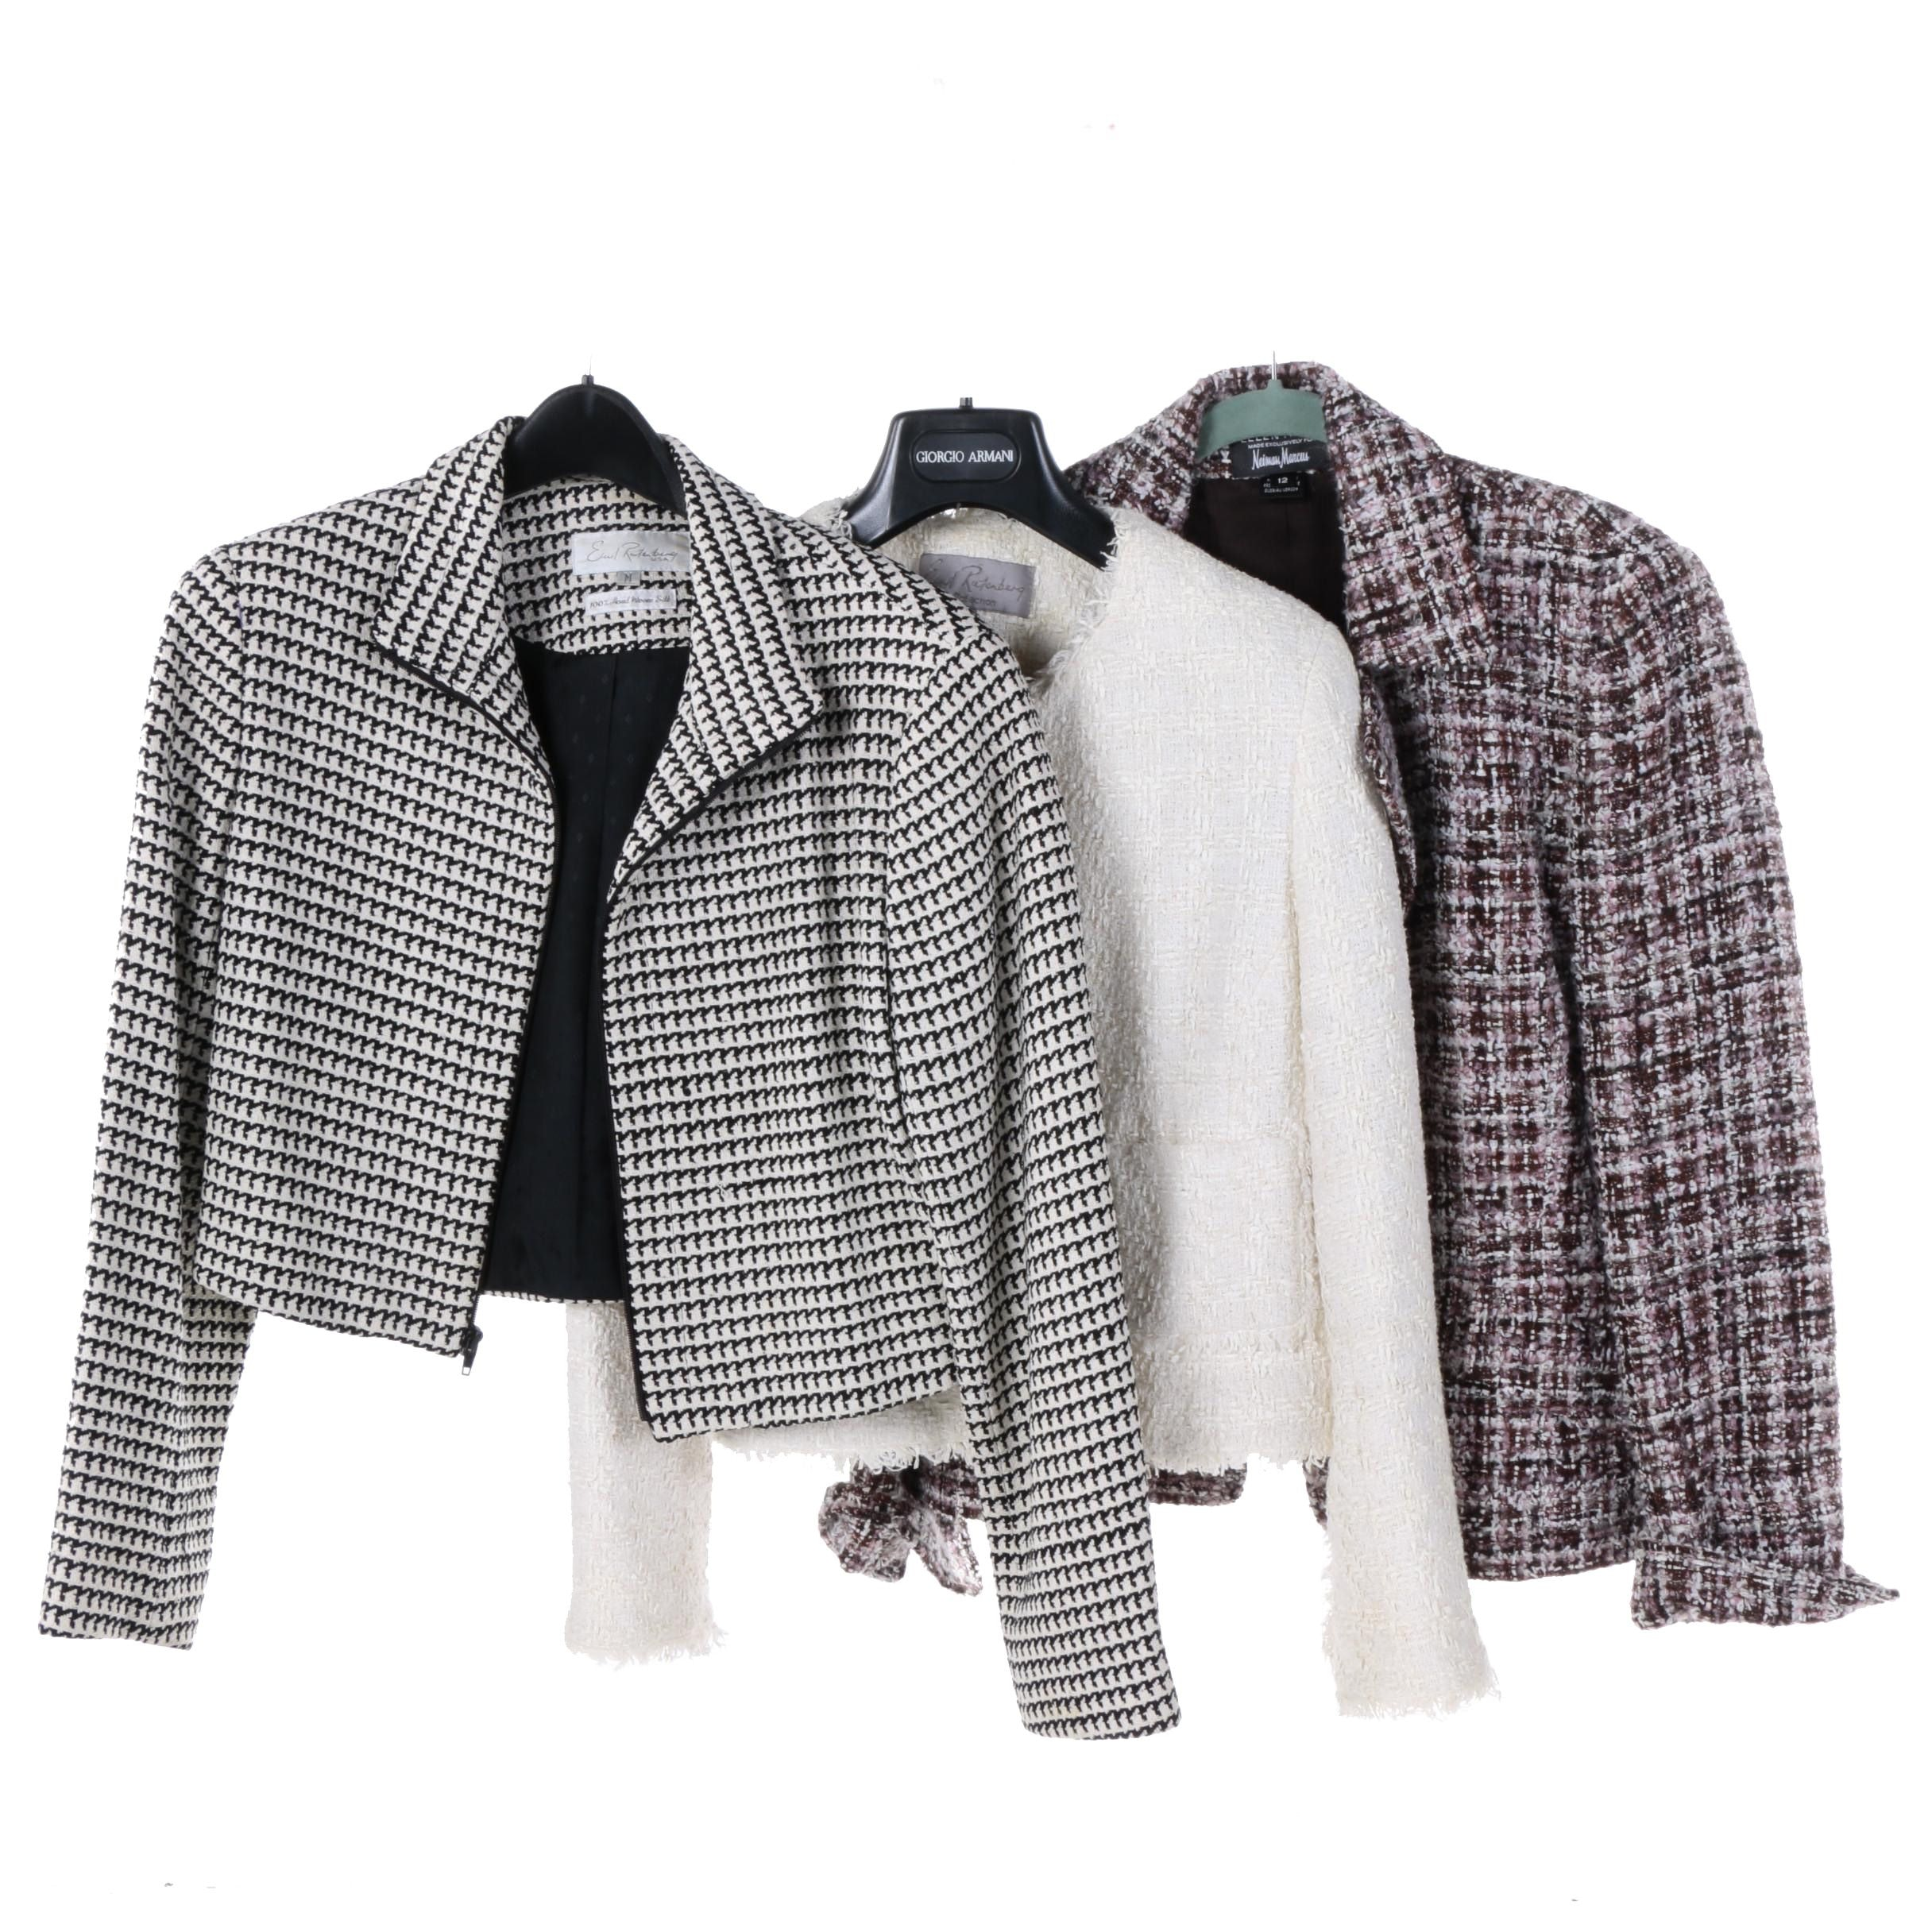 Women's Ellen Tracy Blazer and Emil Rutenberg Jackets